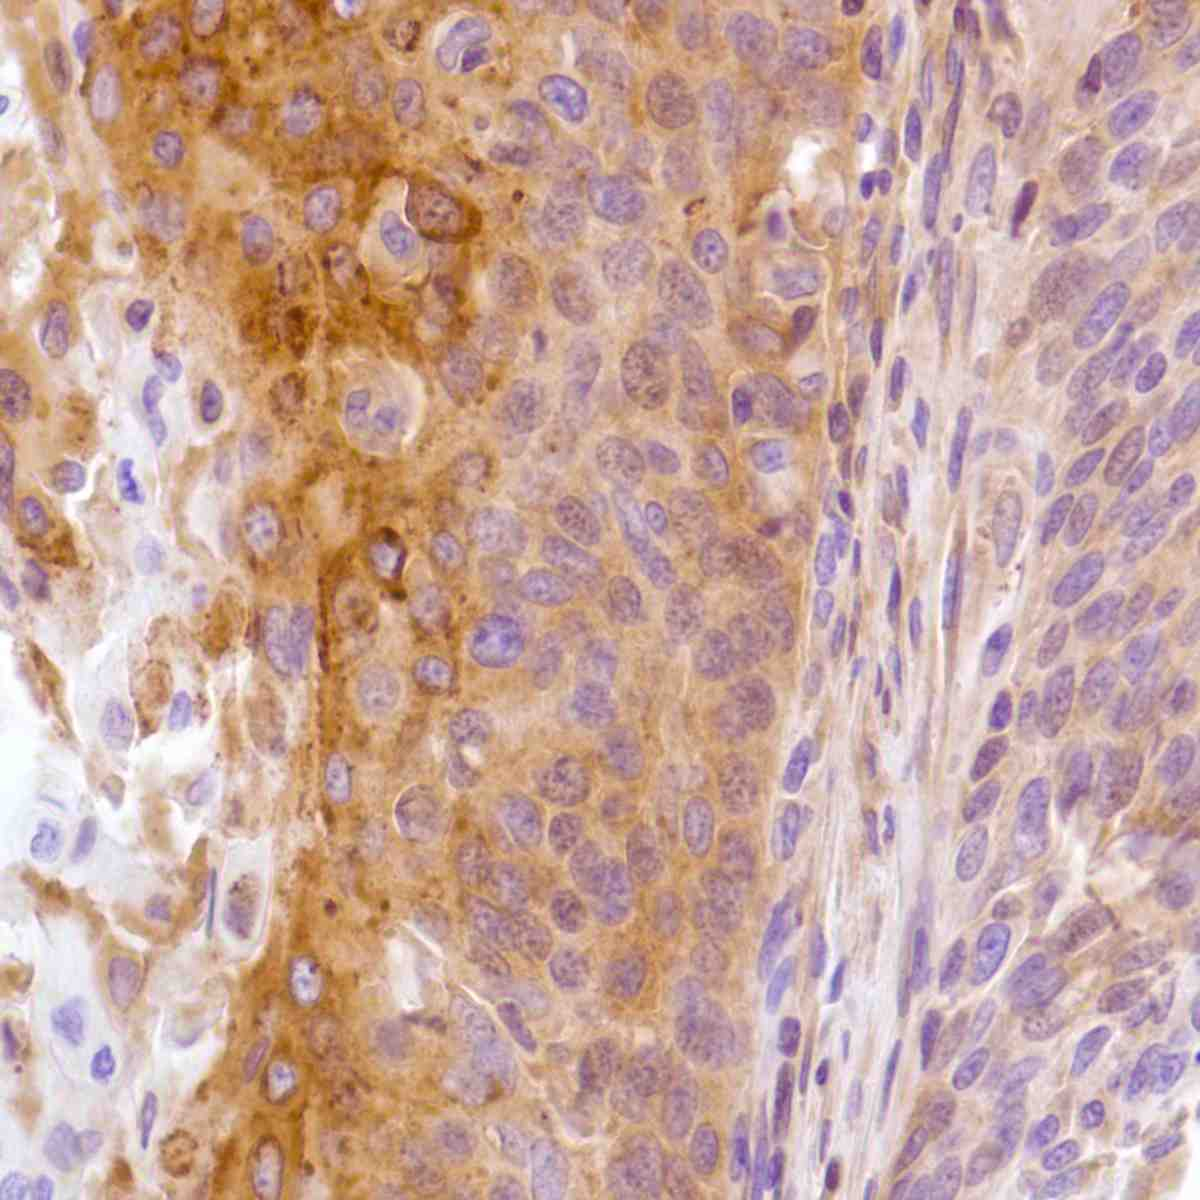 Human Cervical Squamous Cell Carcinoma stained with anti-C4.4a antibody